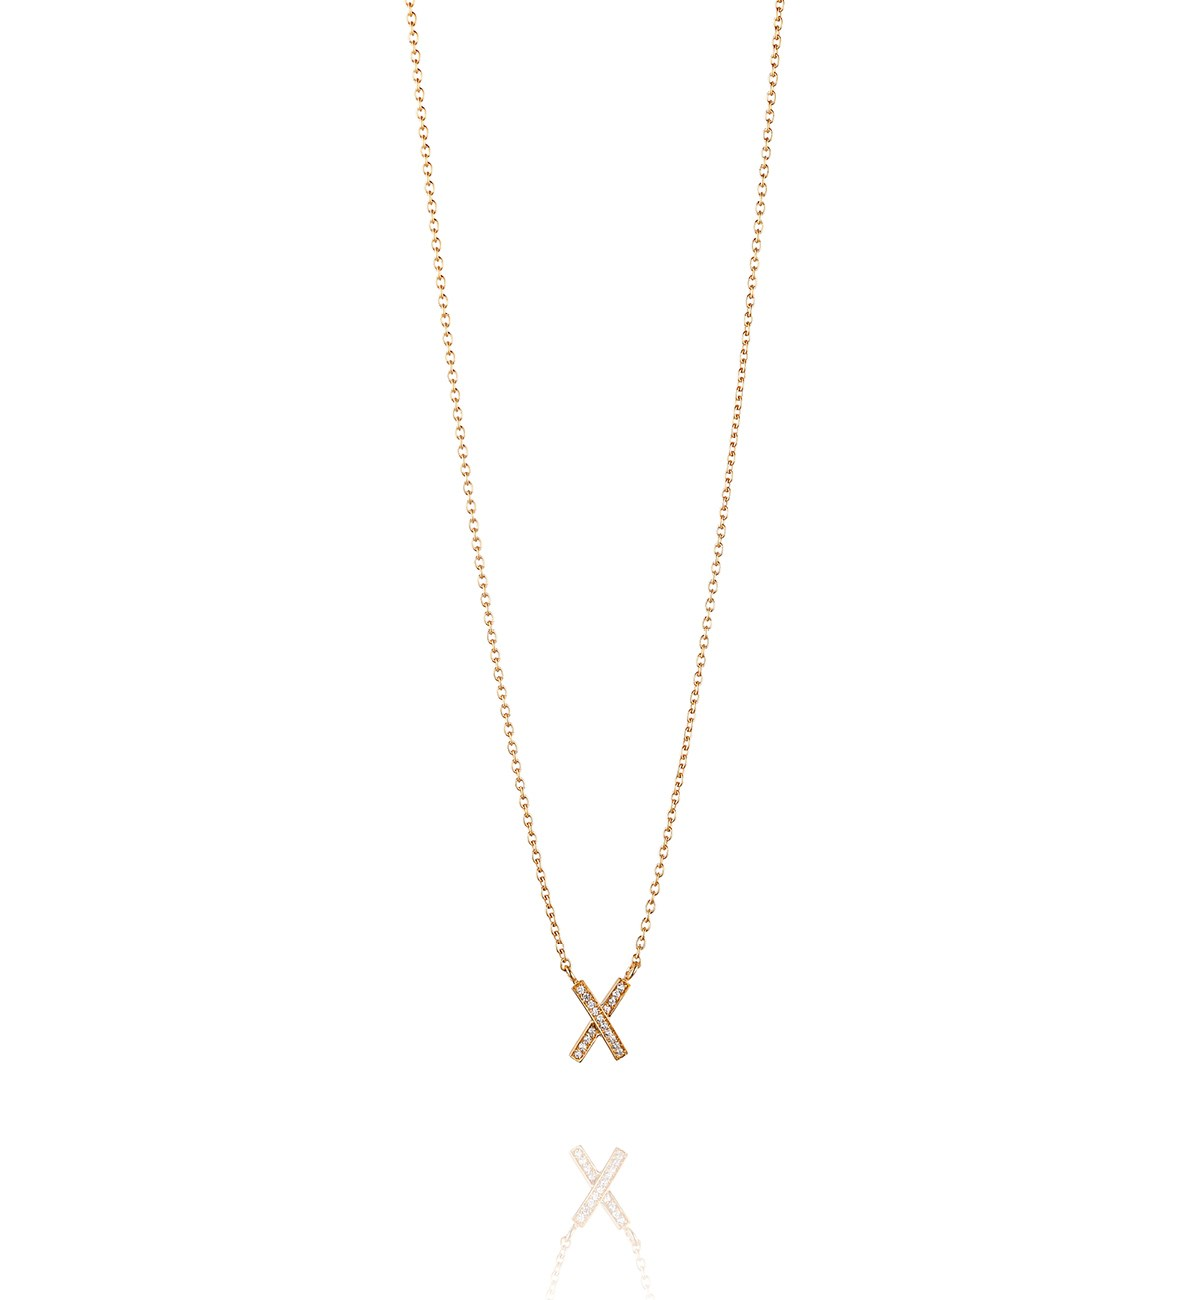 : - Kisses and stars necklace